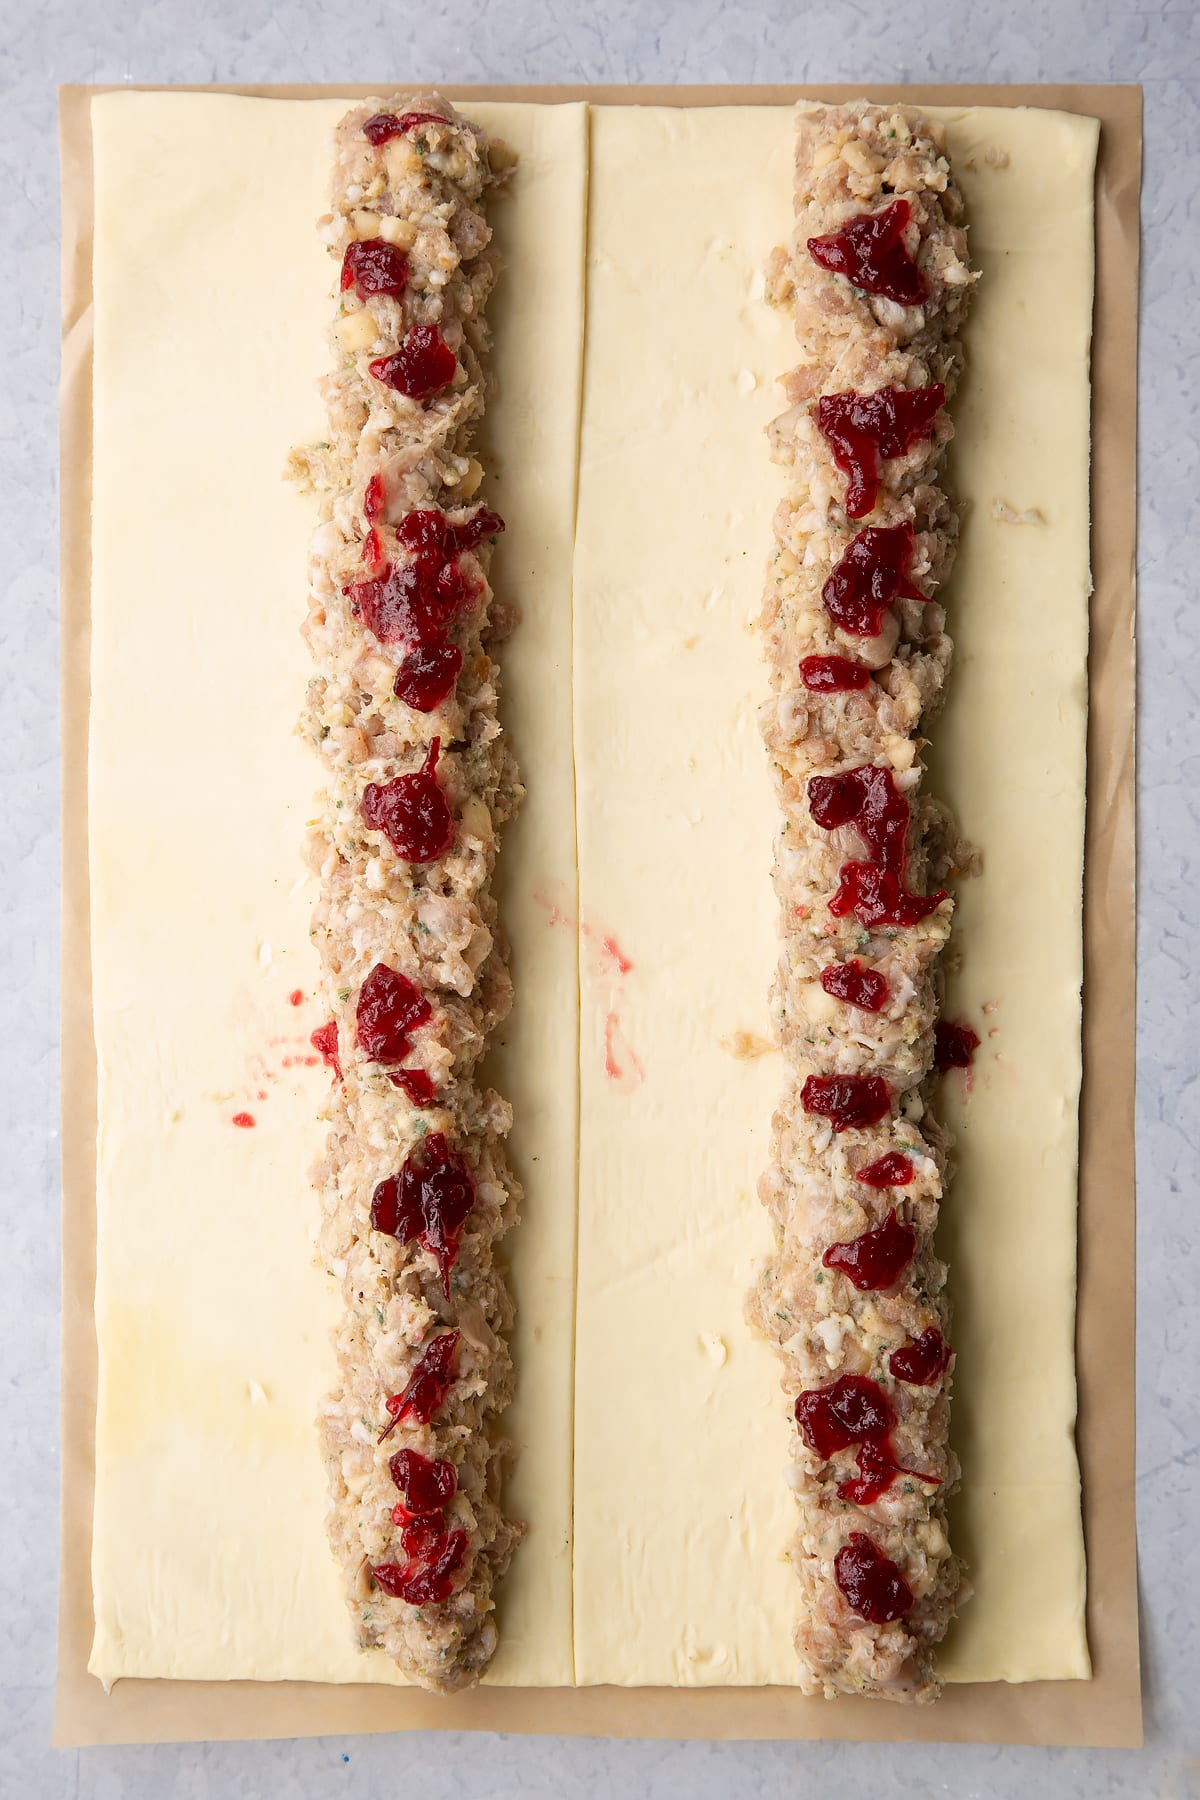 A sheet of puff pastry cut in half lengthways. Each half has a length of festive sausage meat down the middle, dotted with cranberry sauce.